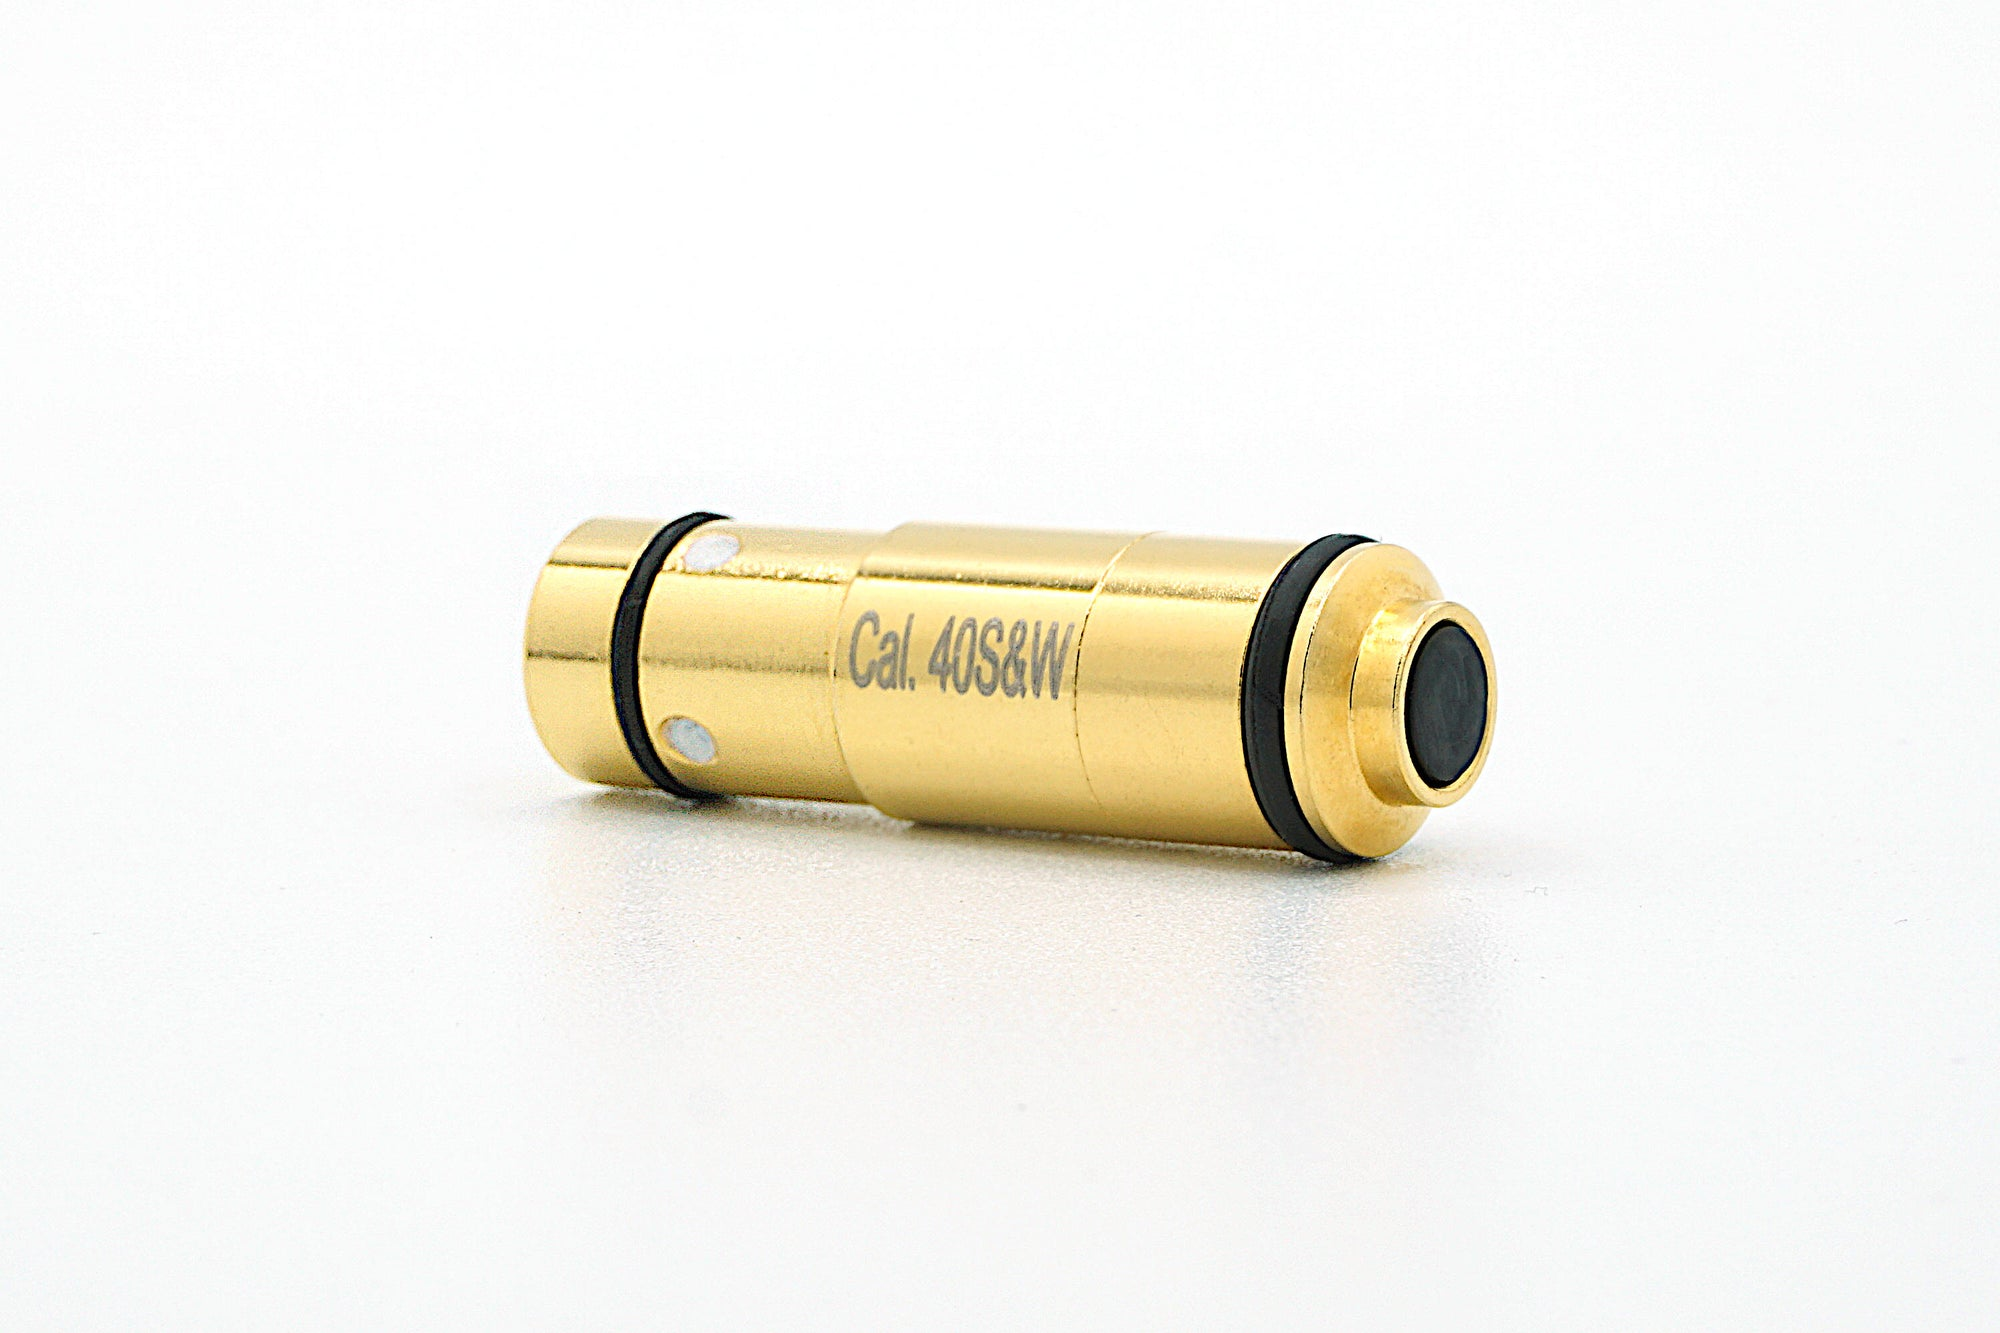 .40 S&W Laser ammunition cartridge for dry fire training. Powerful 5mw 635nm red laser is snap cap switch activated.